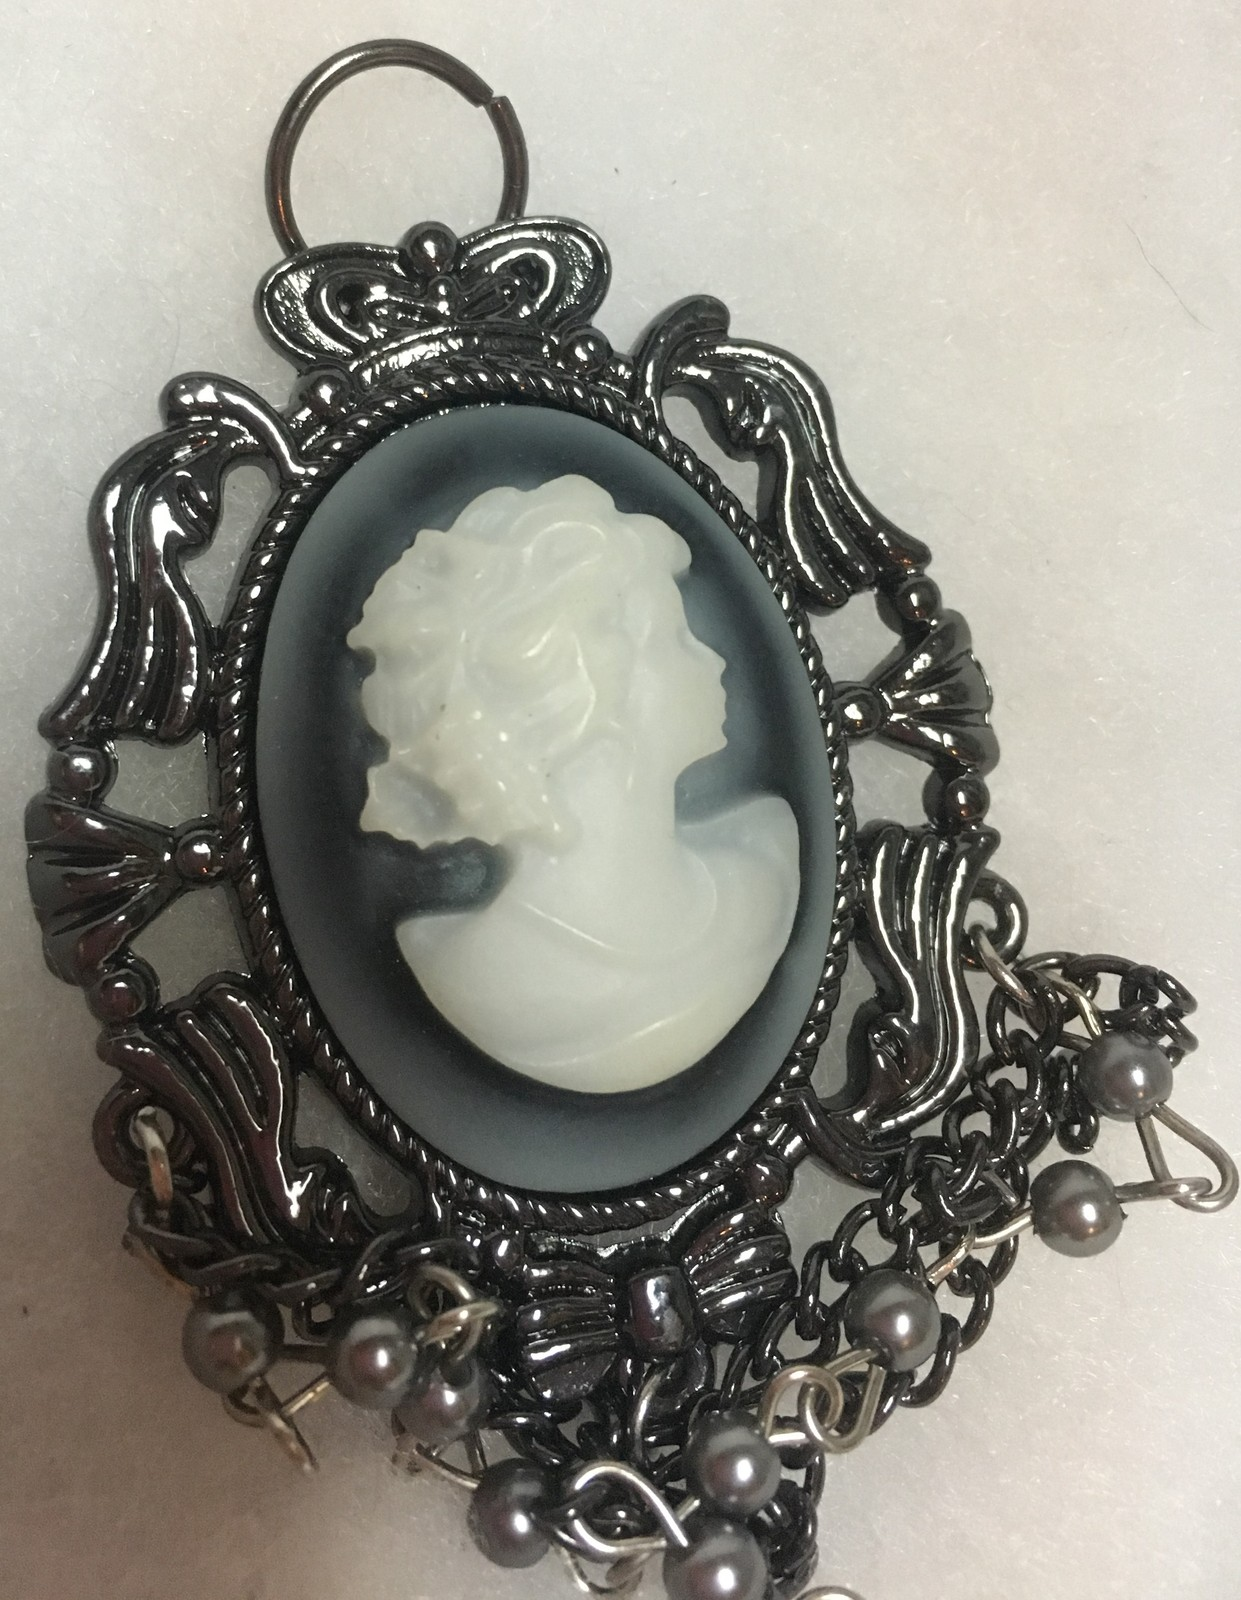 Black & White Cameo Necklace Pendant 4""